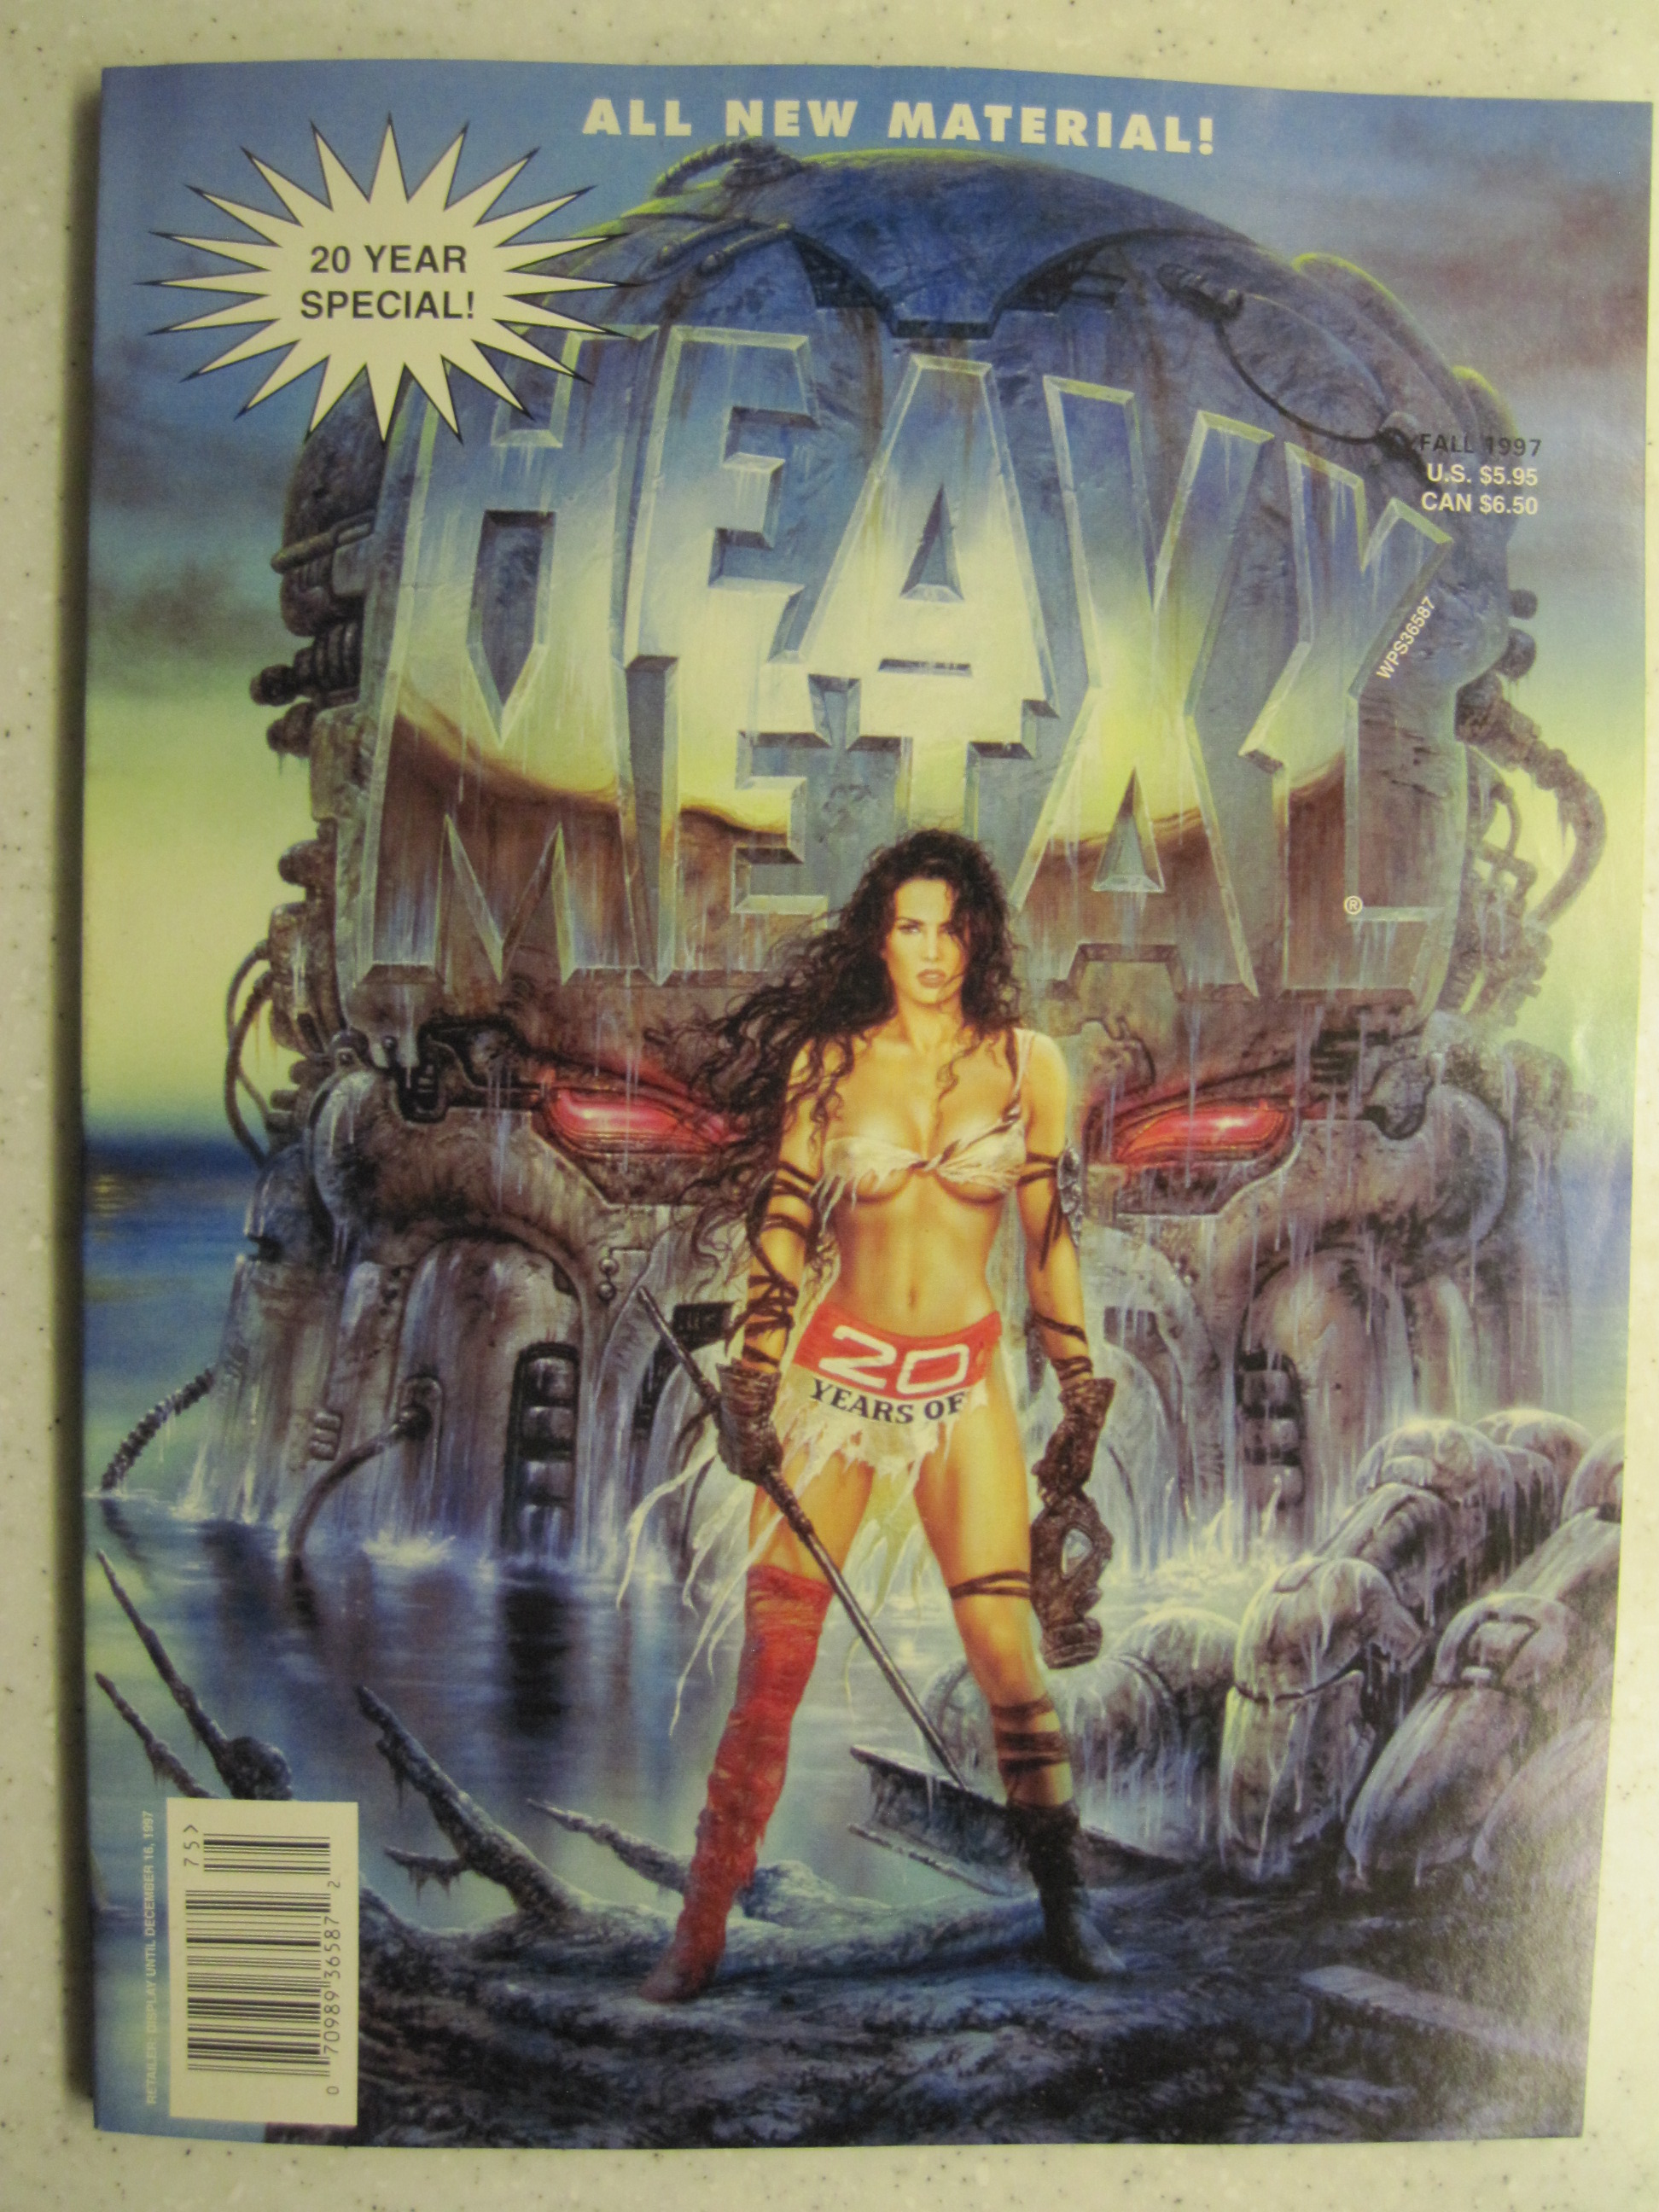 HEAVY METAL MAGAZINE 20 YEAR SPECIAL 97